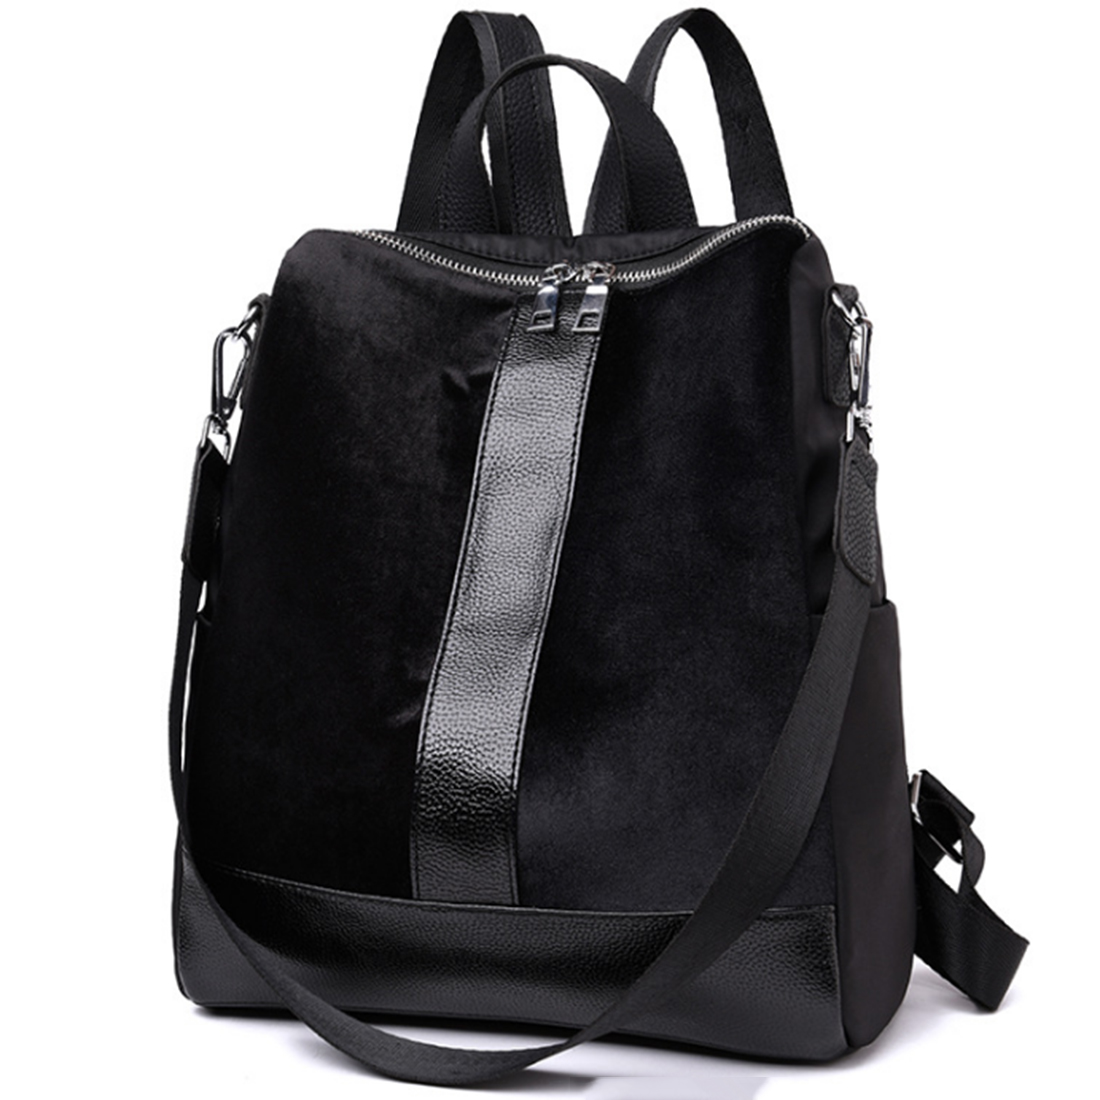 HIPSTEEN 2018 Portable Women Travel Backpack Oxford Suede Casual Travel Shoulder Bags Daily Traveling Student School Bag Hot Hot